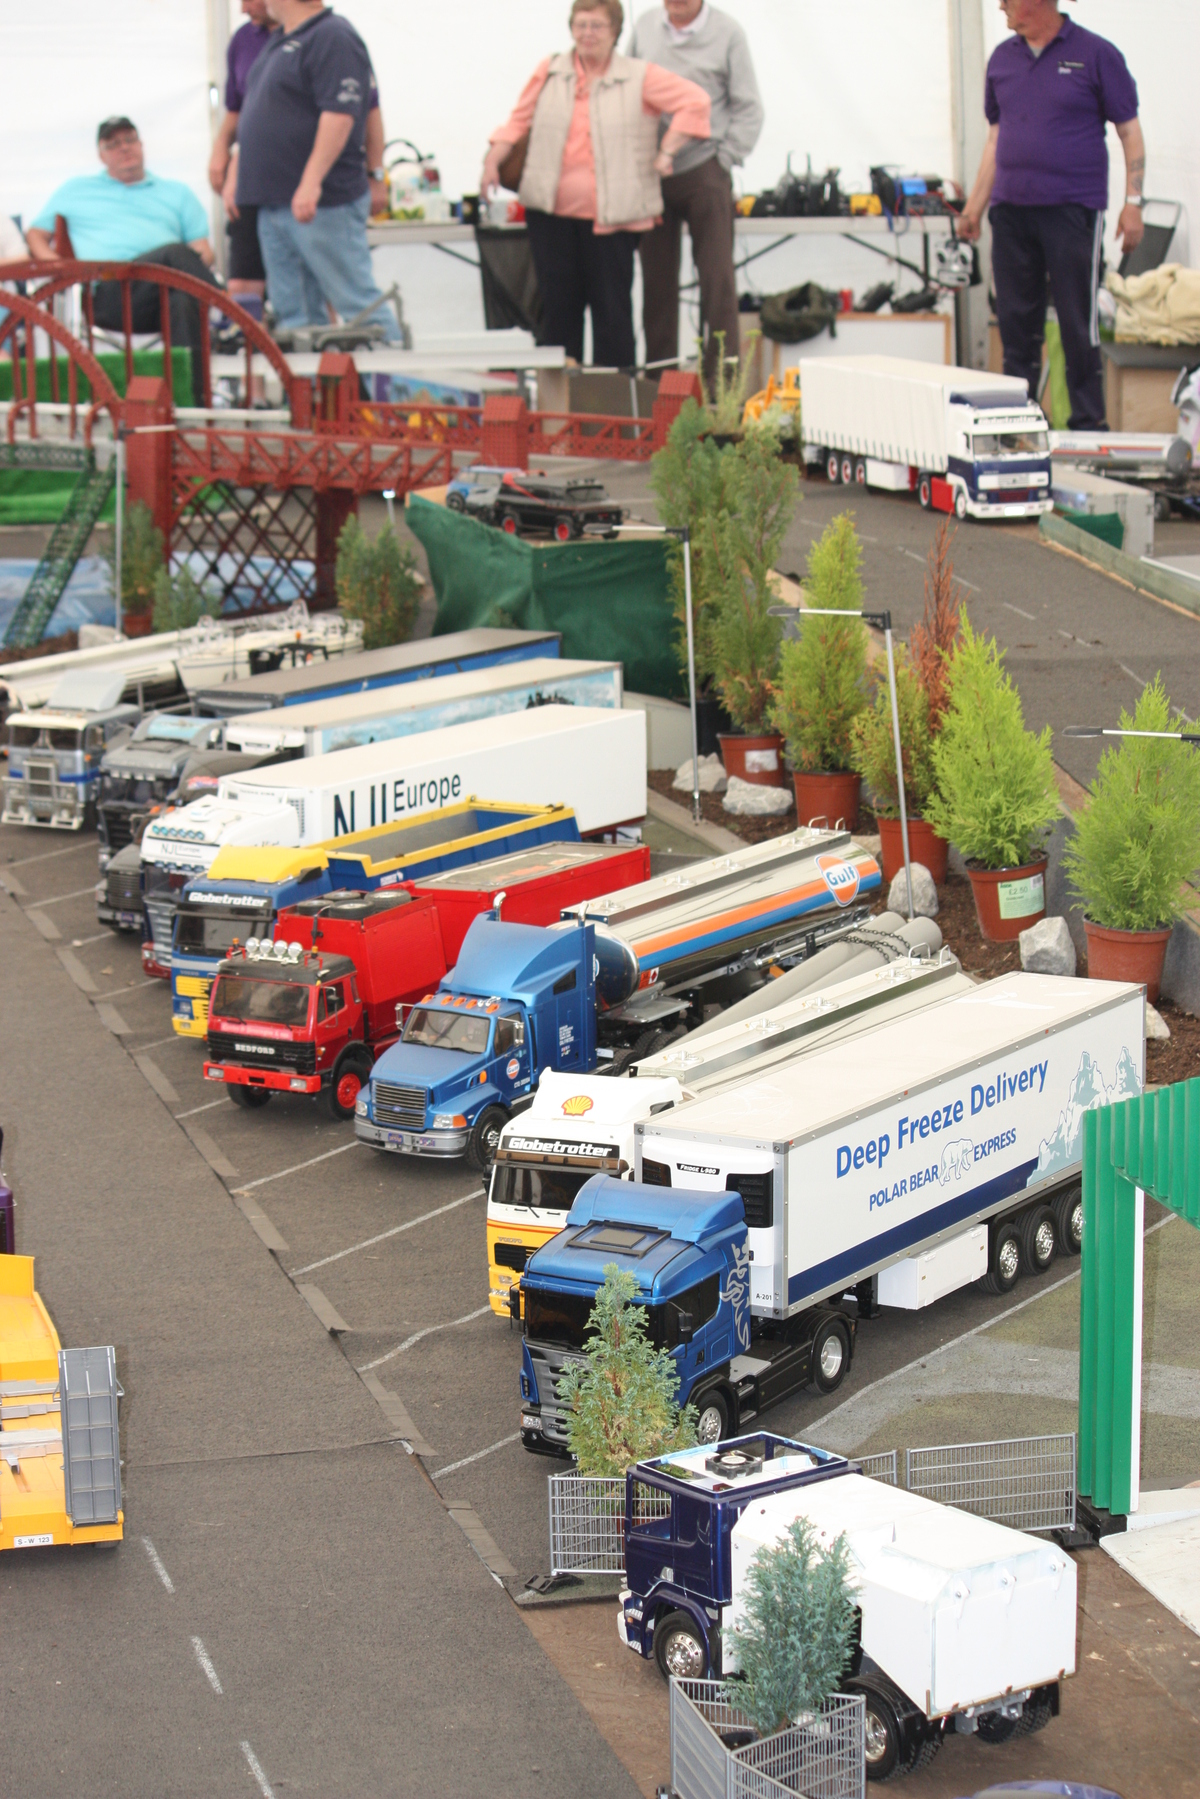 Lifelike trucks lined up ready for a display